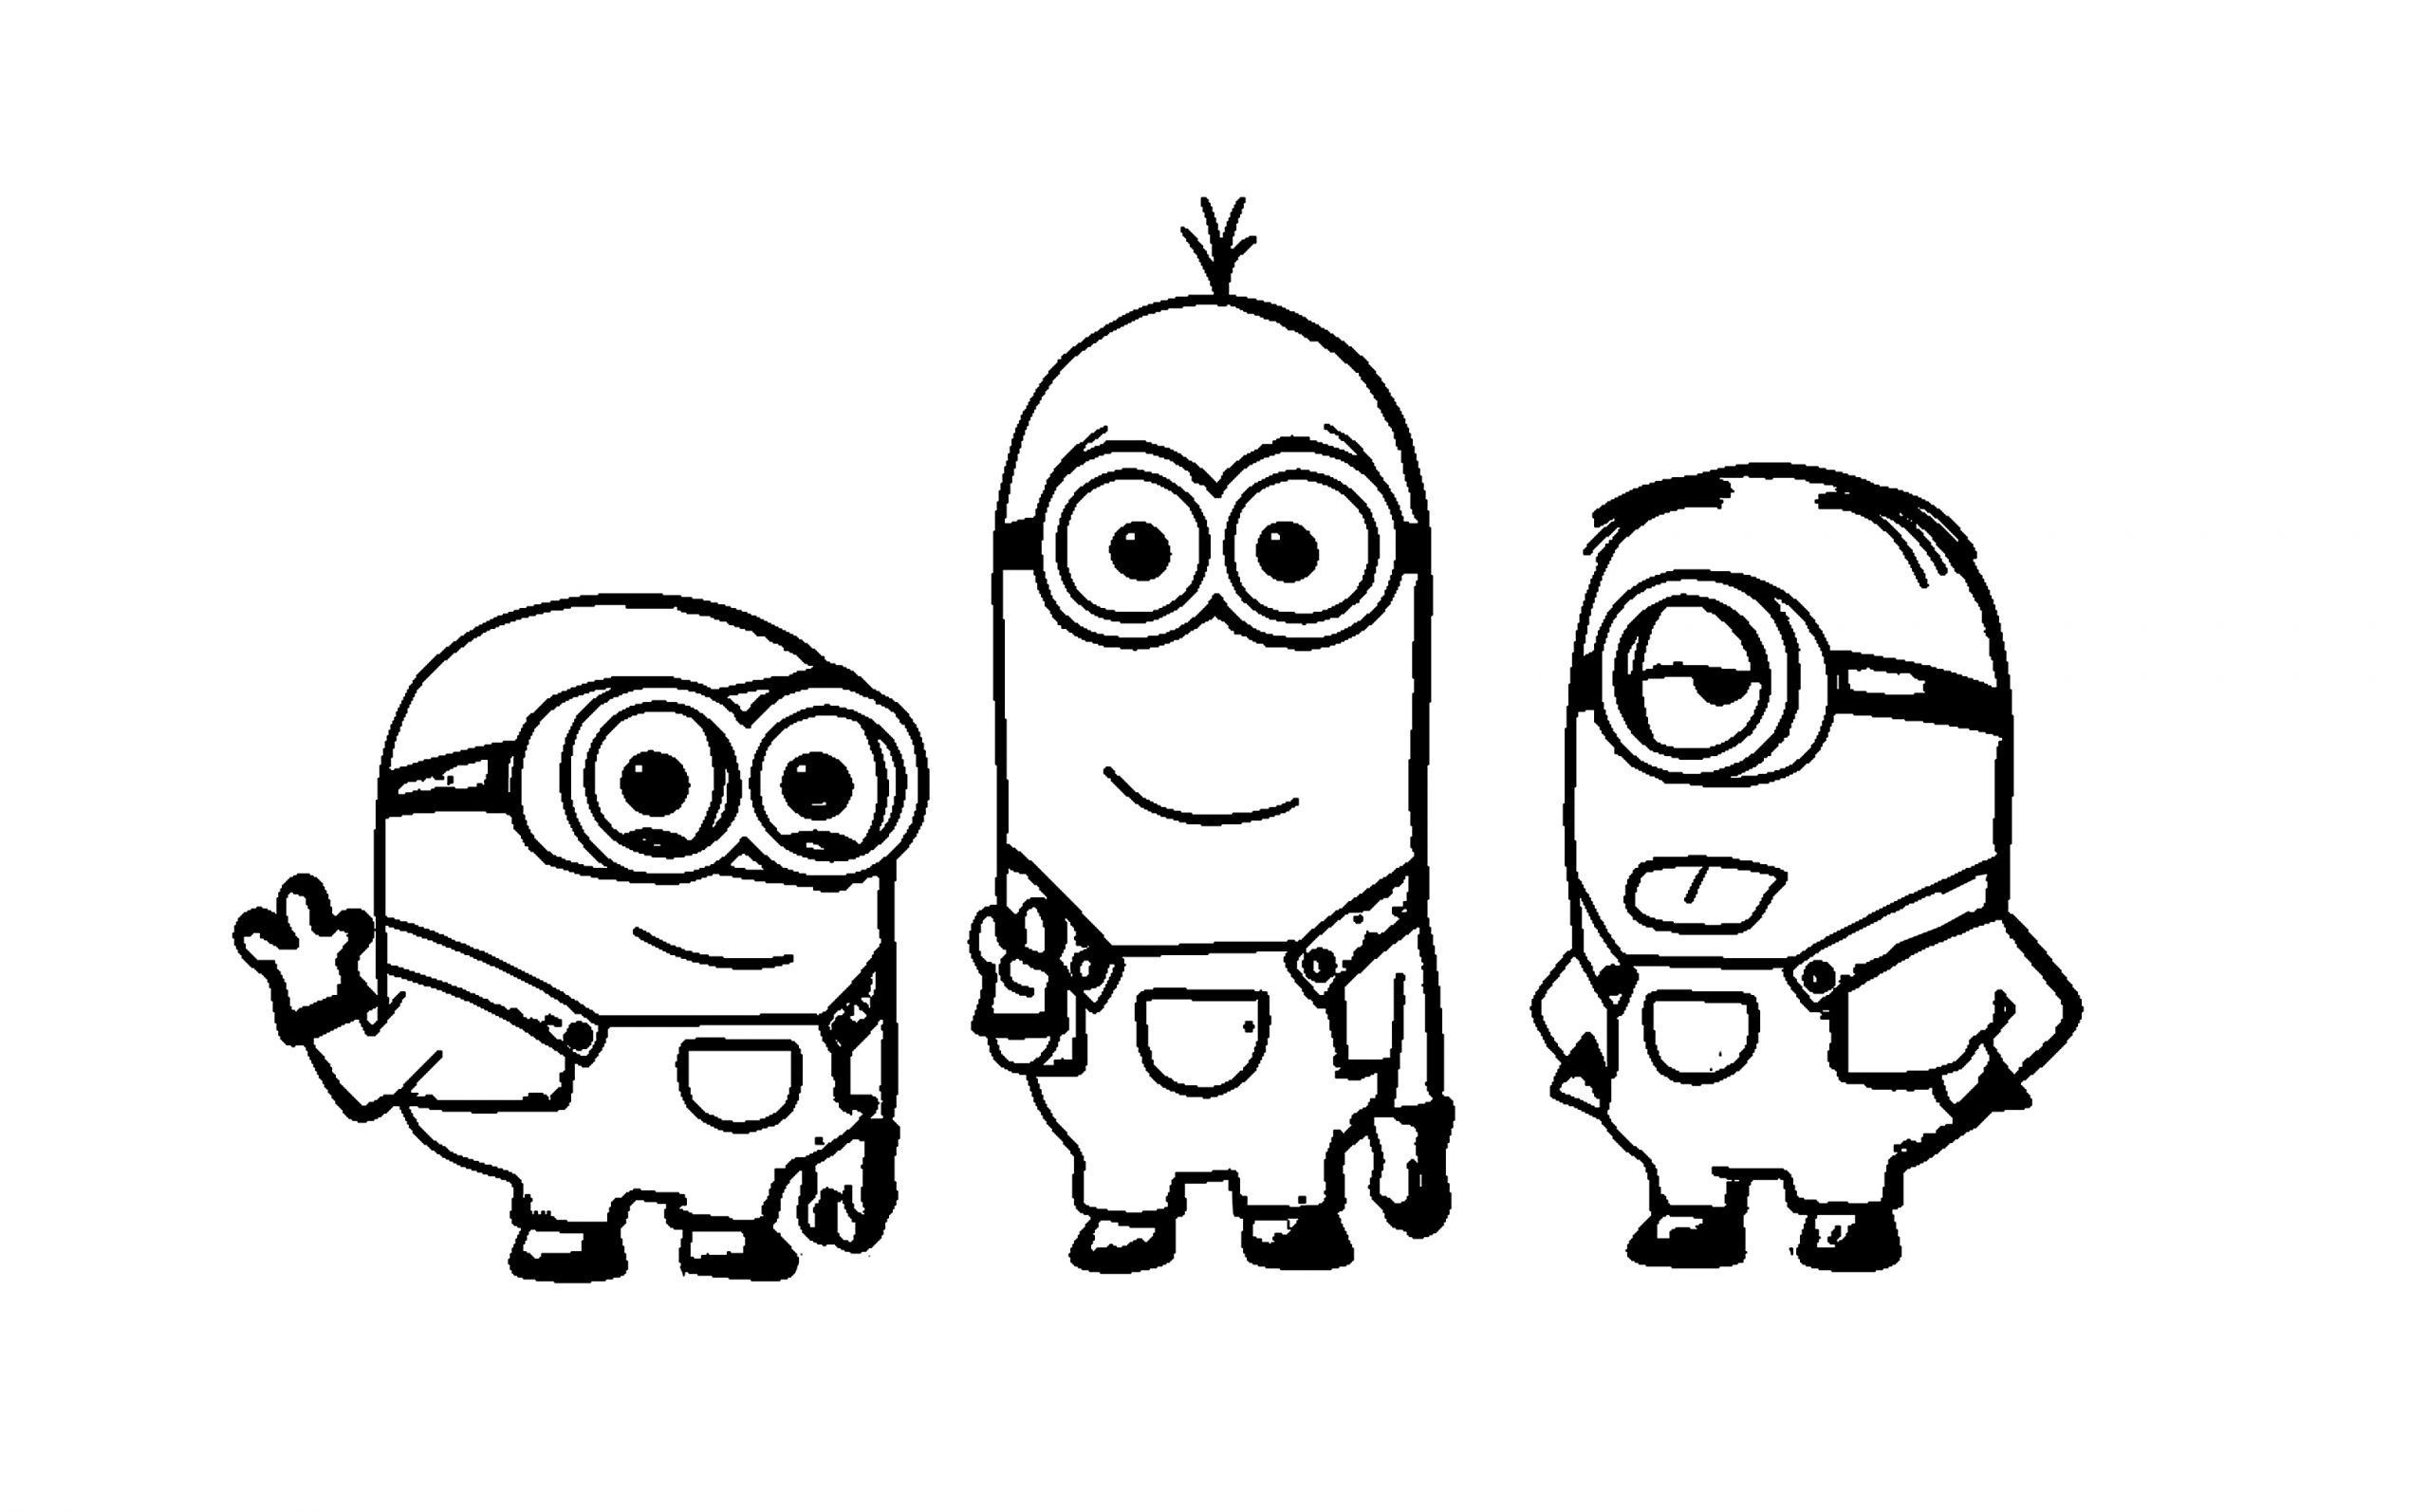 Besorgnis Minions Gratis In 2020 Minions Coloring Pages Vault Boy